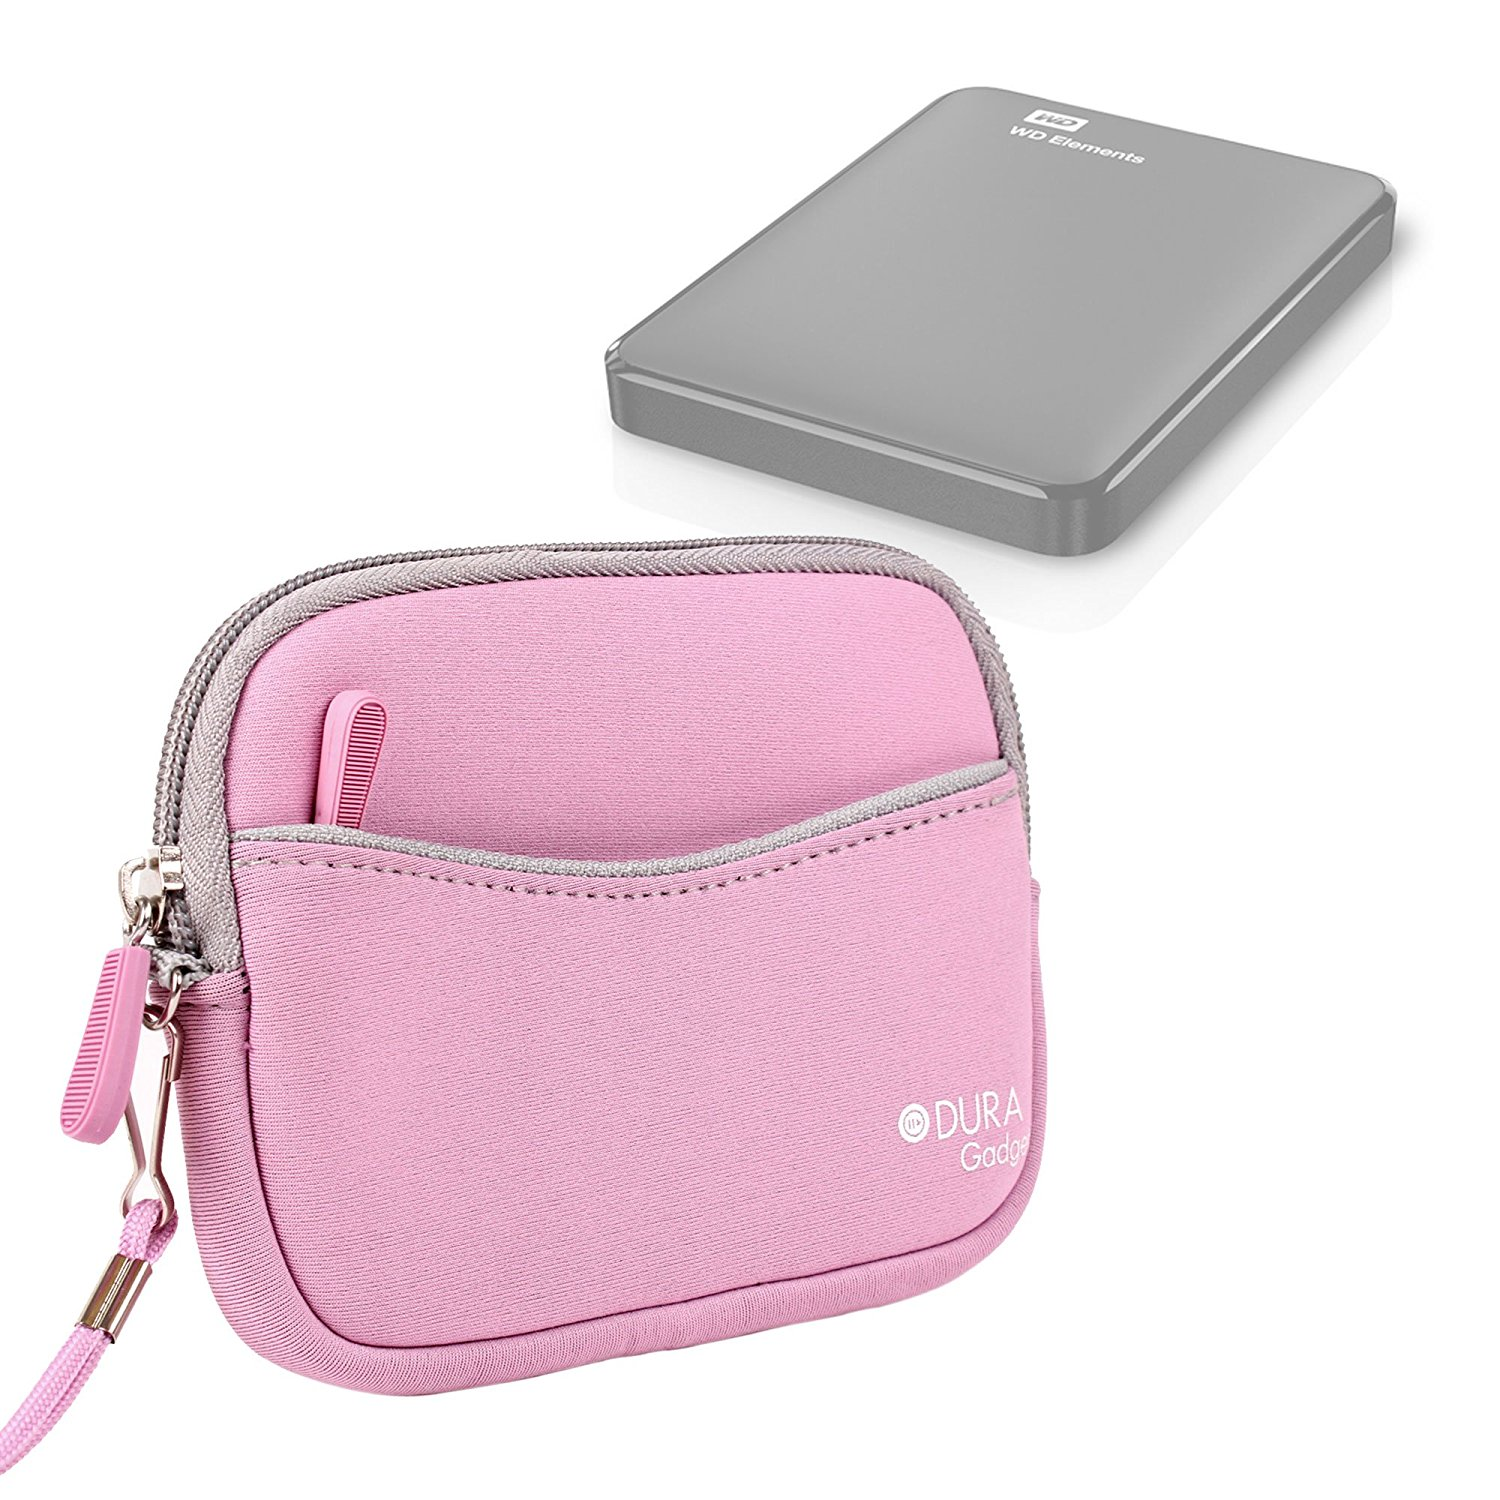 Cheap Western Digital External 2tb Find Wd My Passport Usb 30 Free Softcase Harddisk Get Quotations Duragadget Pink Water Resistant Neoprene Hard Drive Carry Case For